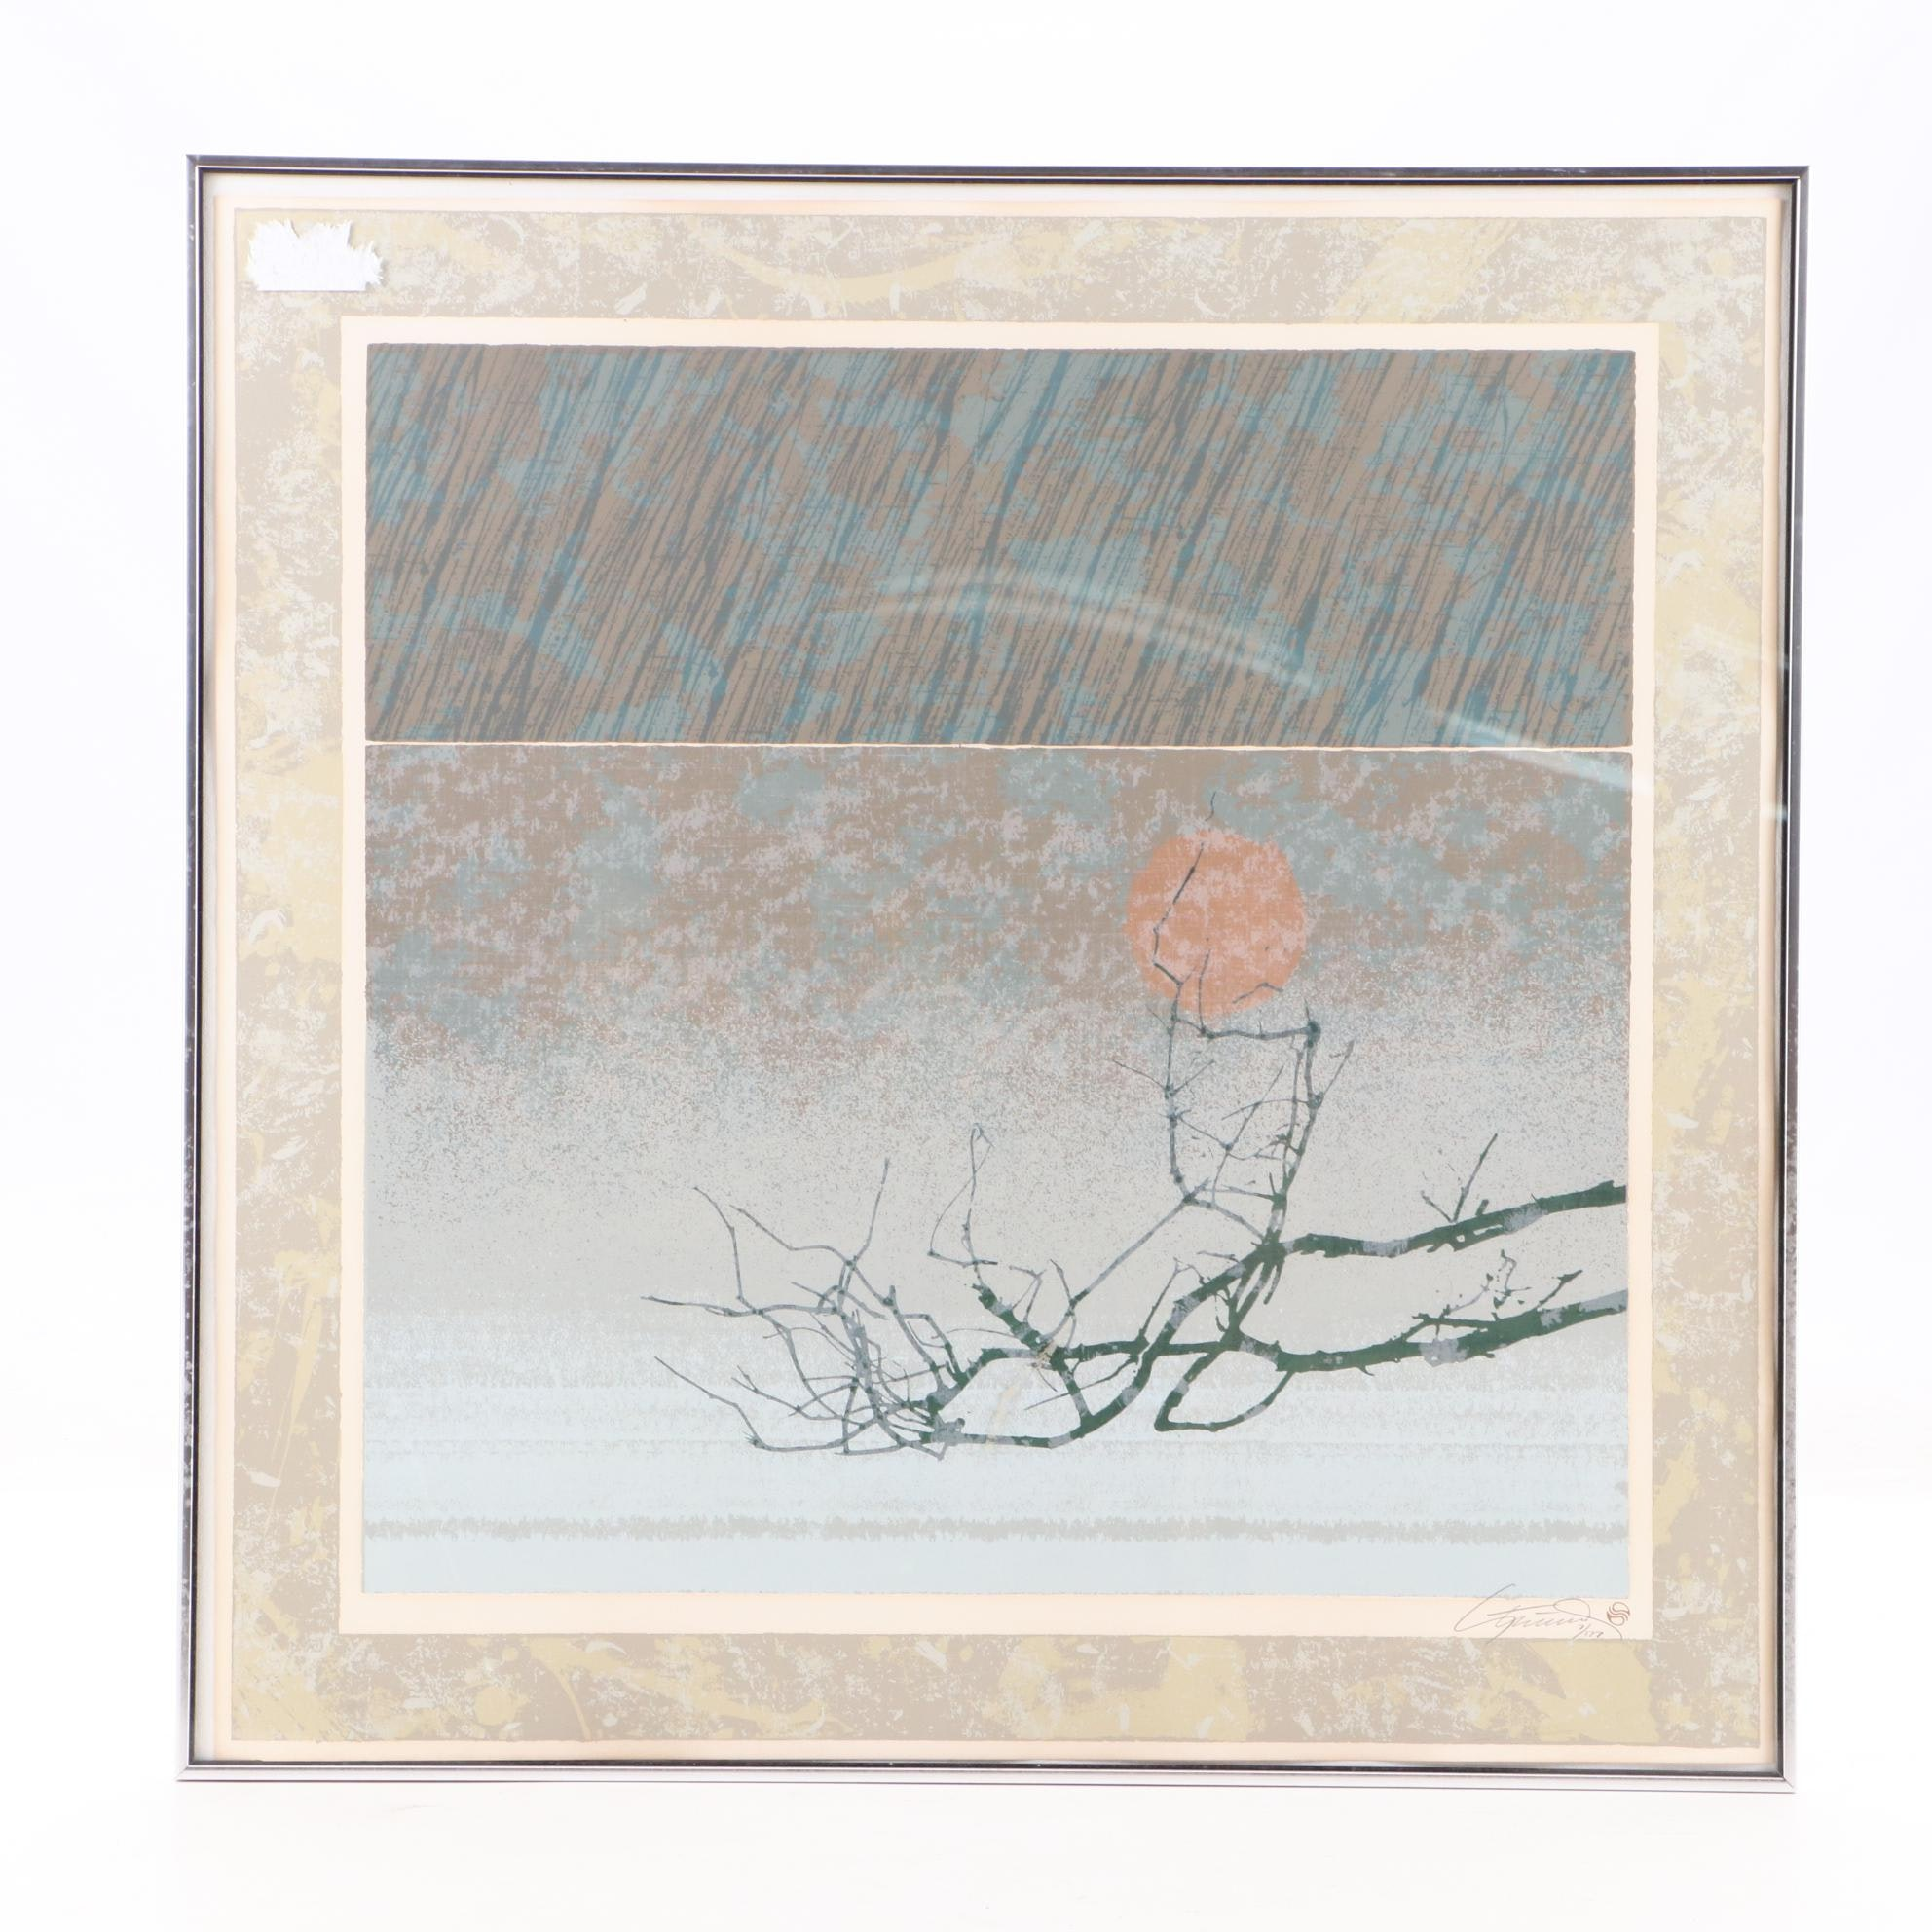 Late 20th-Century Limited Edition East Asian-Inspired Serigraph